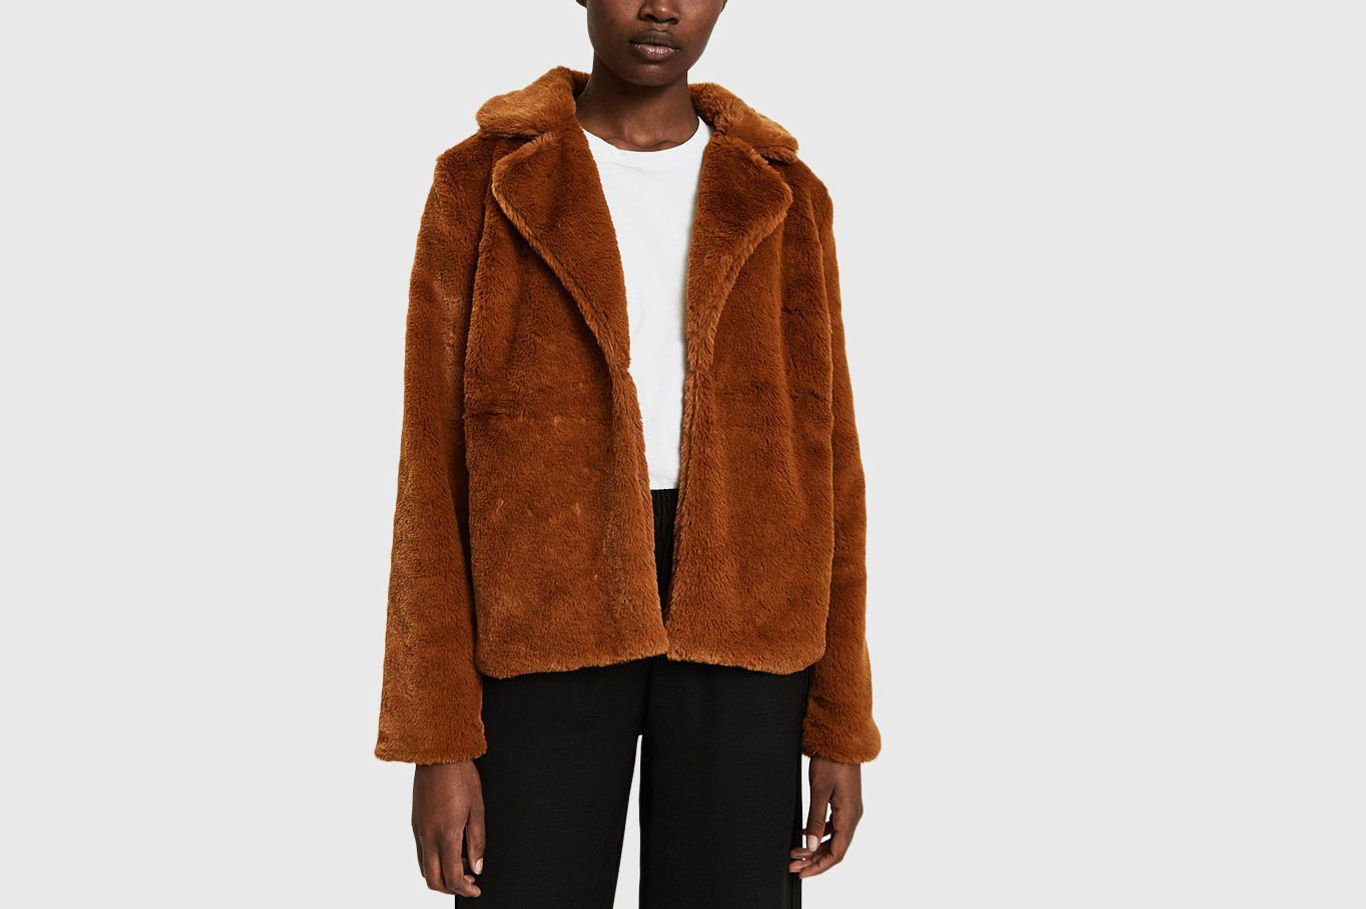 bd595316c Best Teddy Coats for Fall 2018